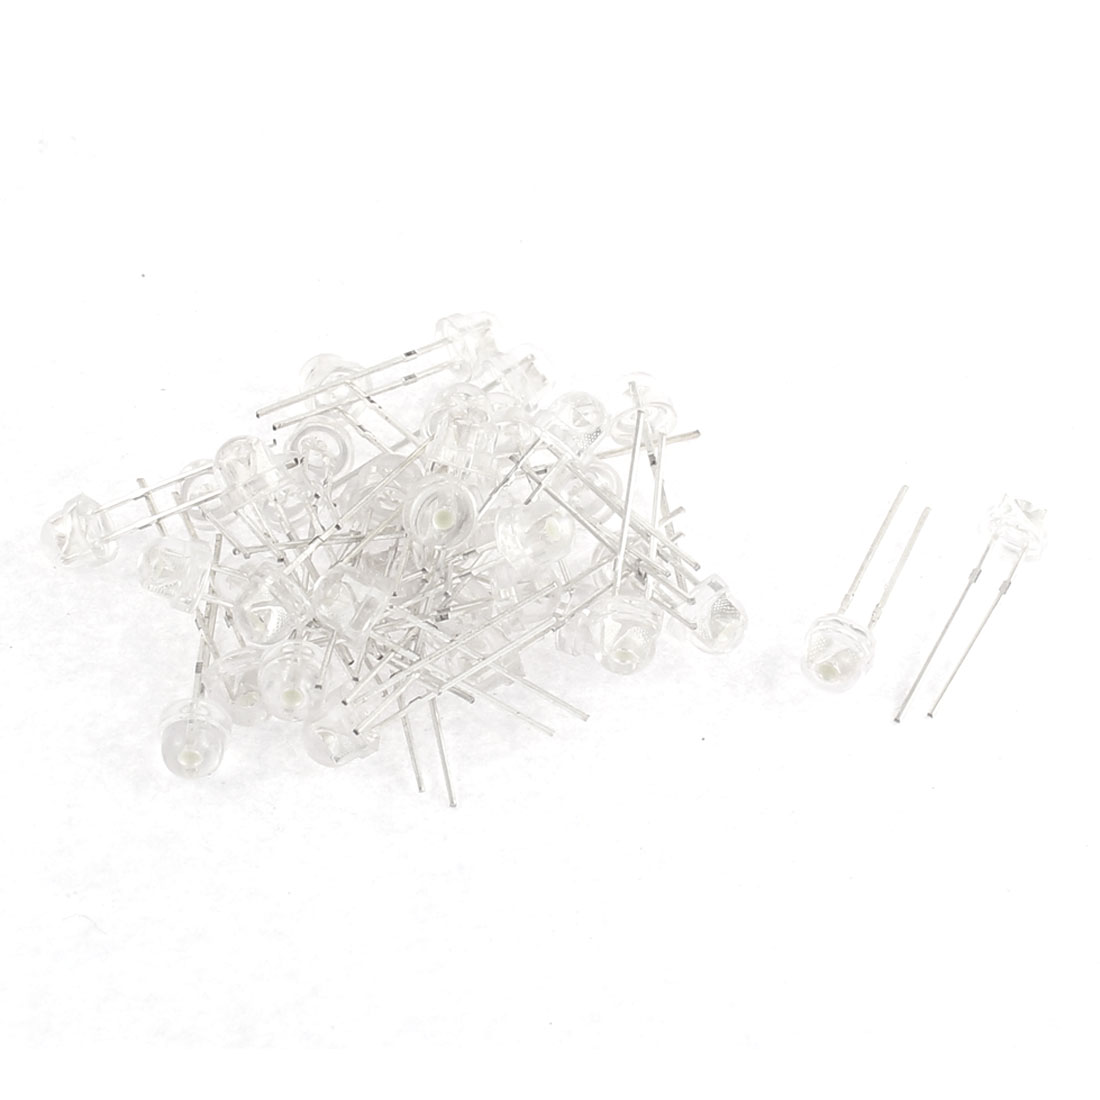 40pcs 5mm Round Head White Light Emitting Diode Leds Bulds Lamp